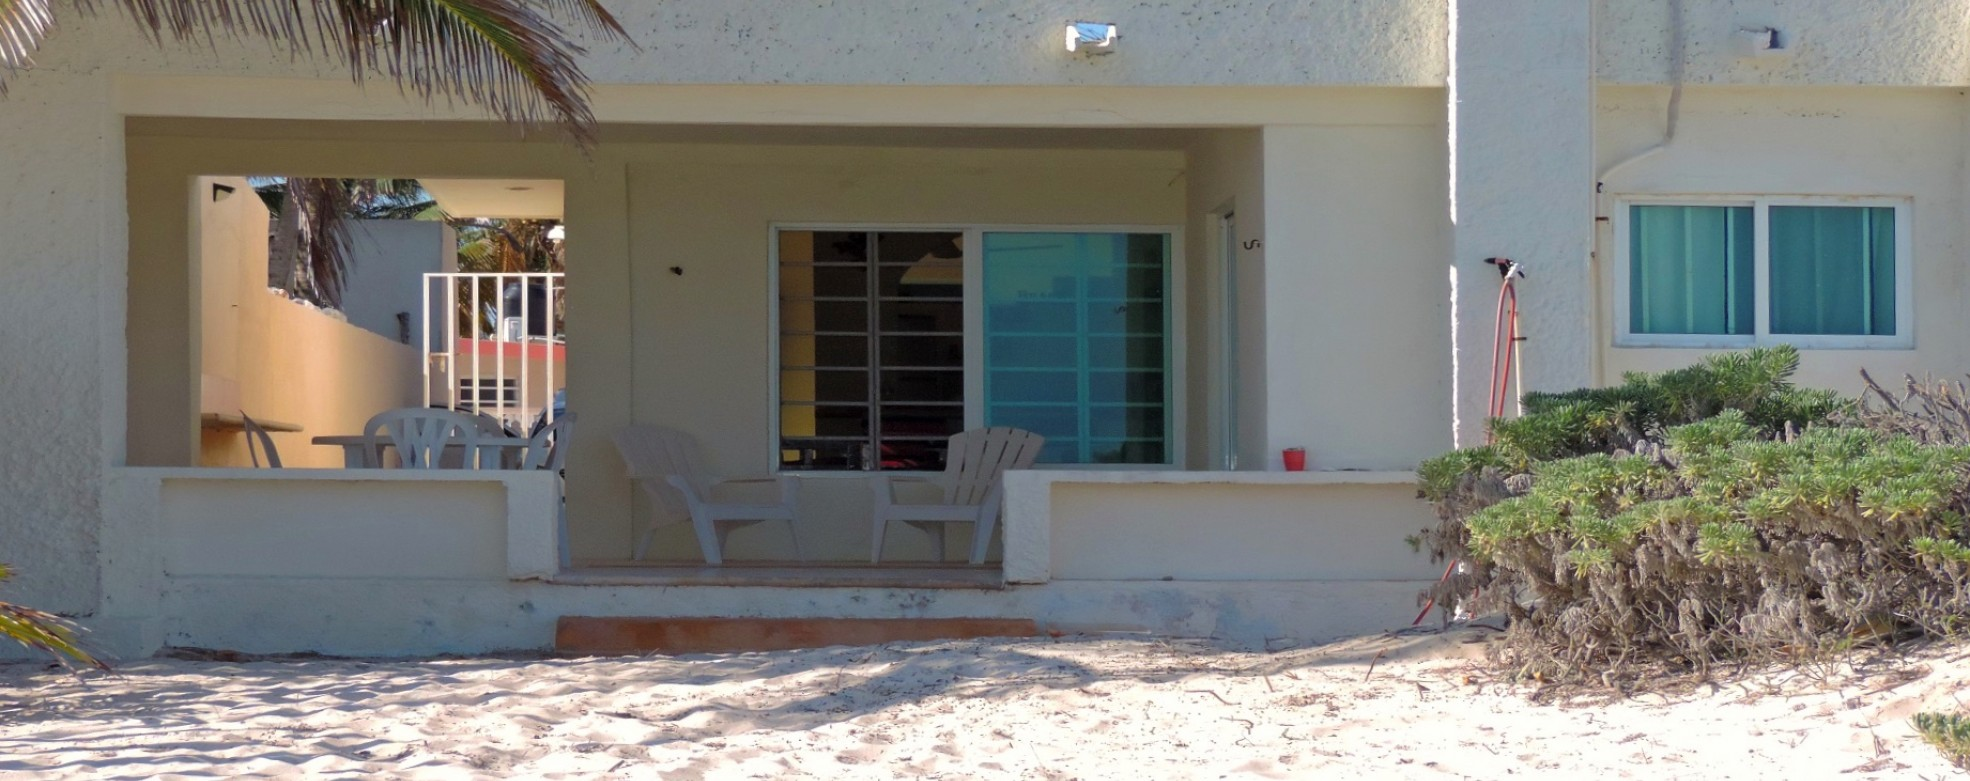 2/2 OCEANFRONT IN CHELEM | Yucatan Real Estate | We Know